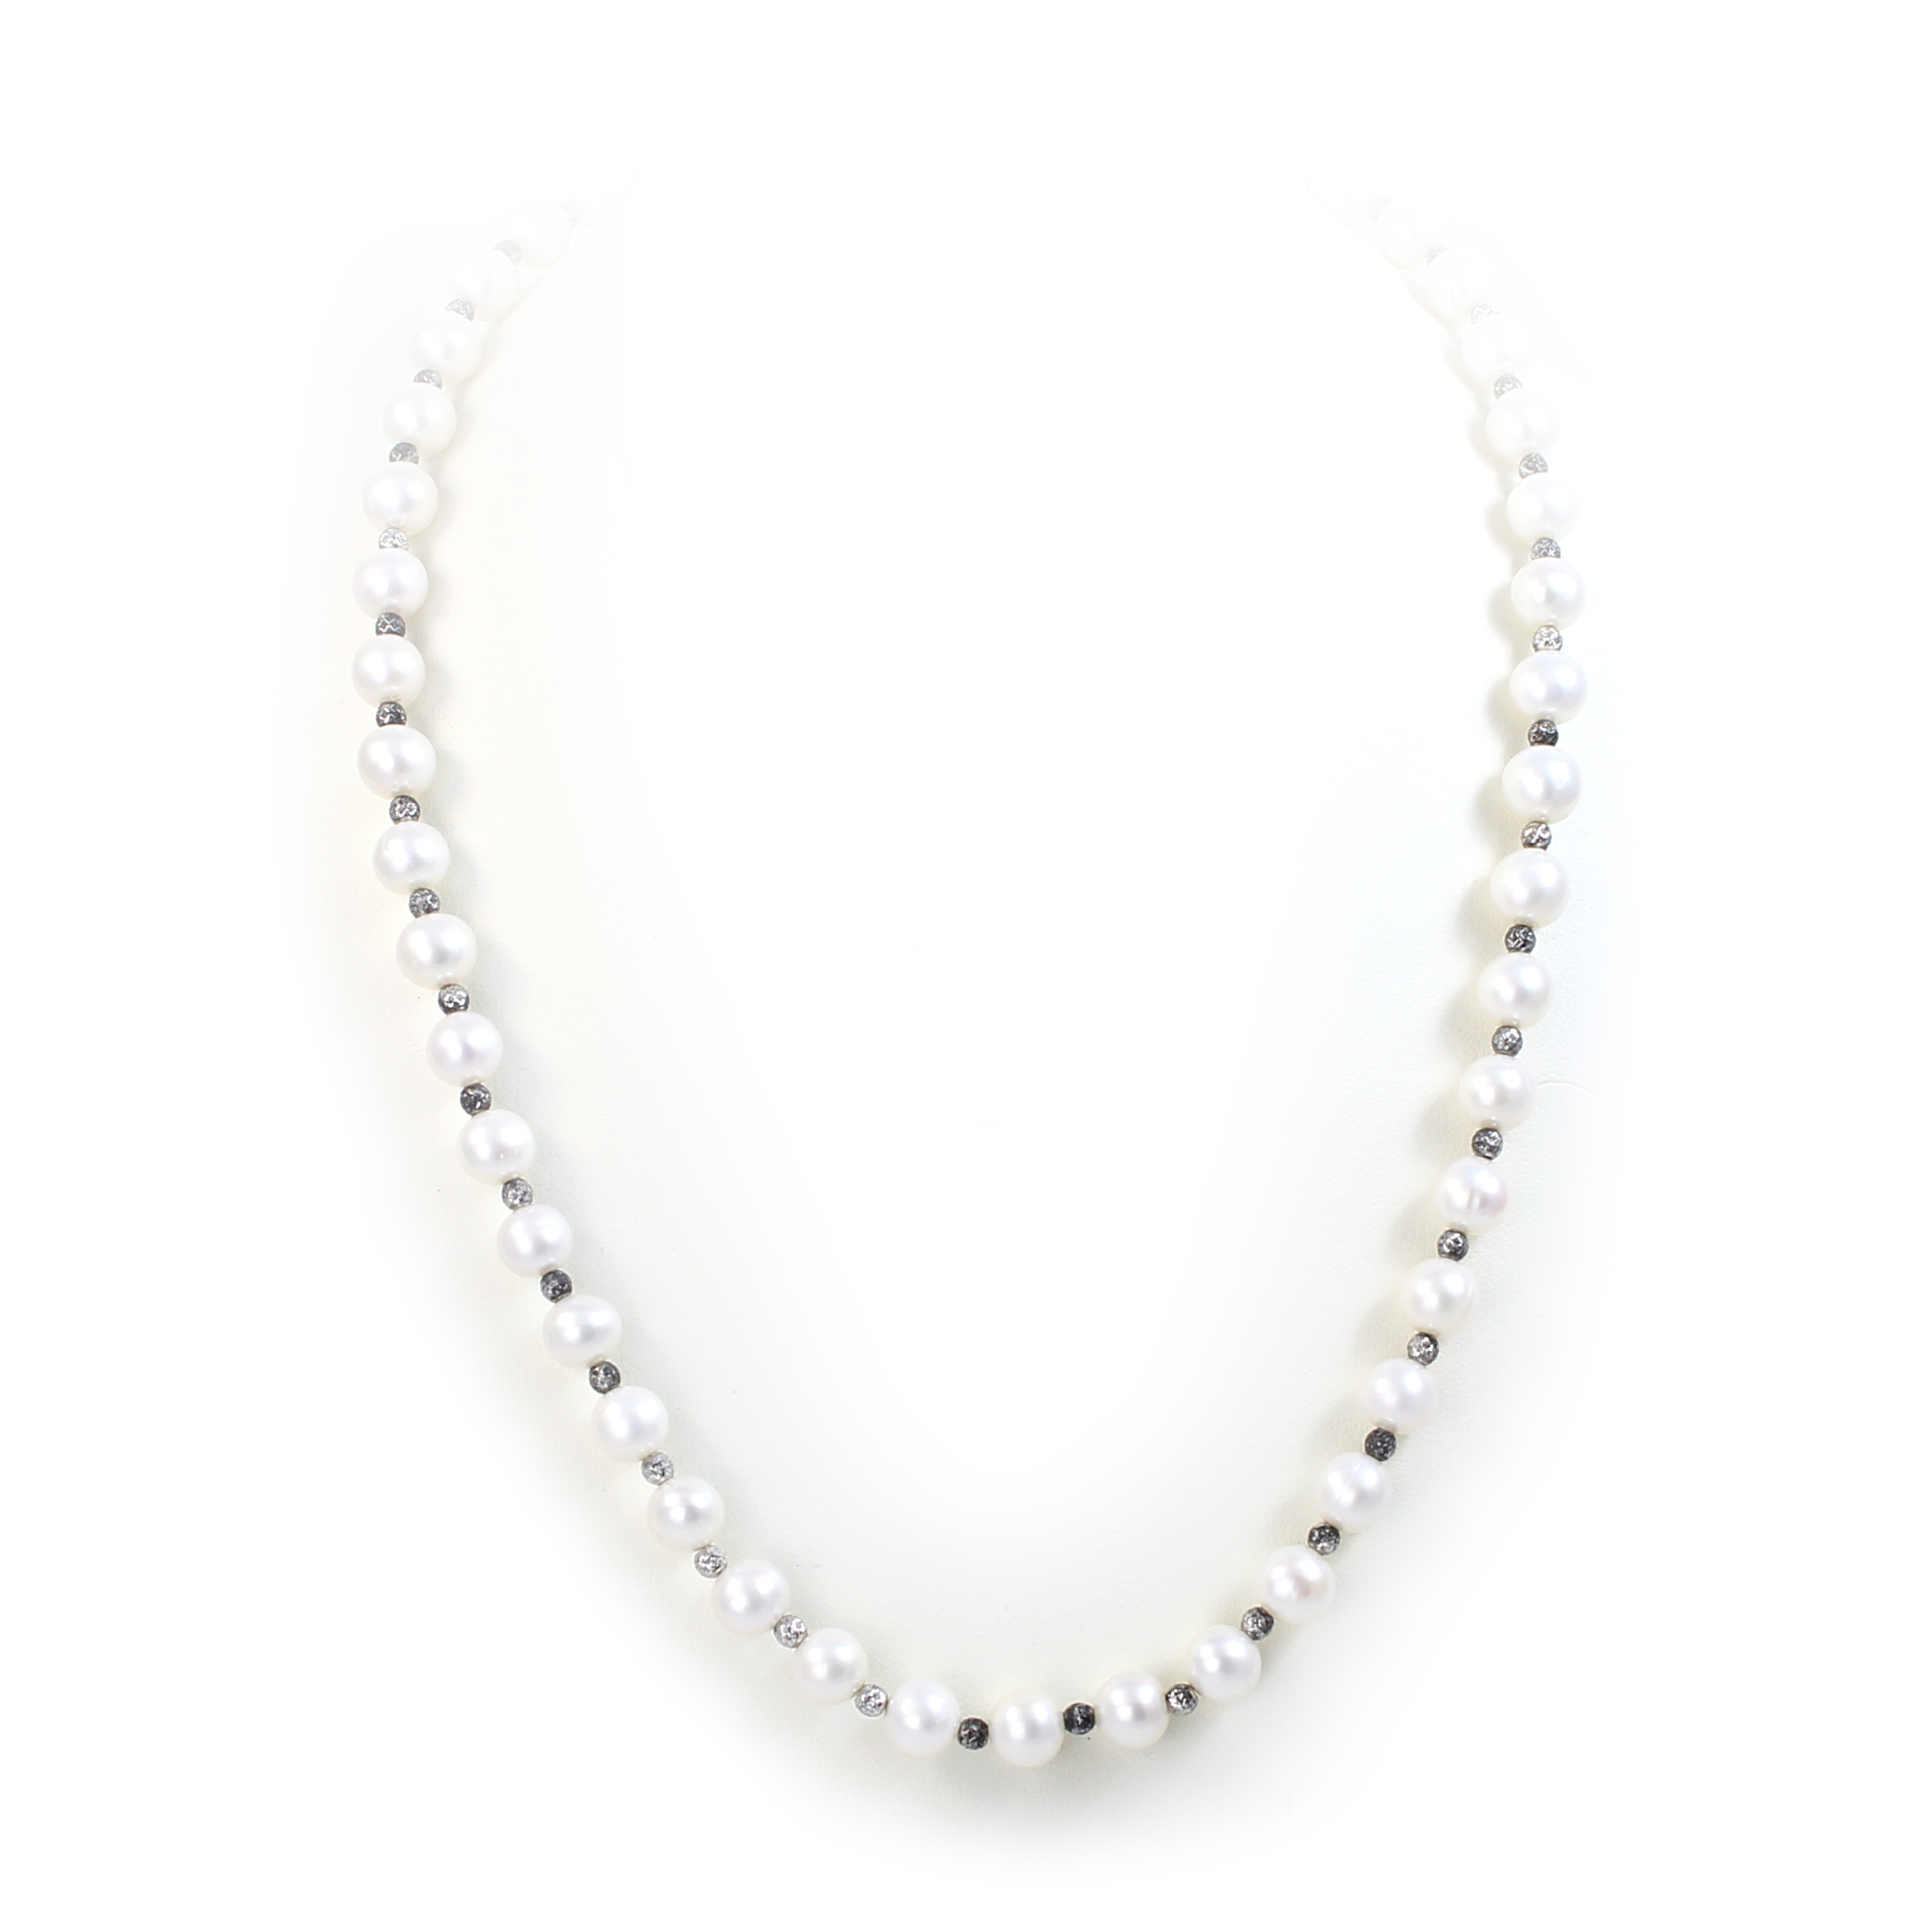 7-8mm White South Sea Pearl Bead Necklace